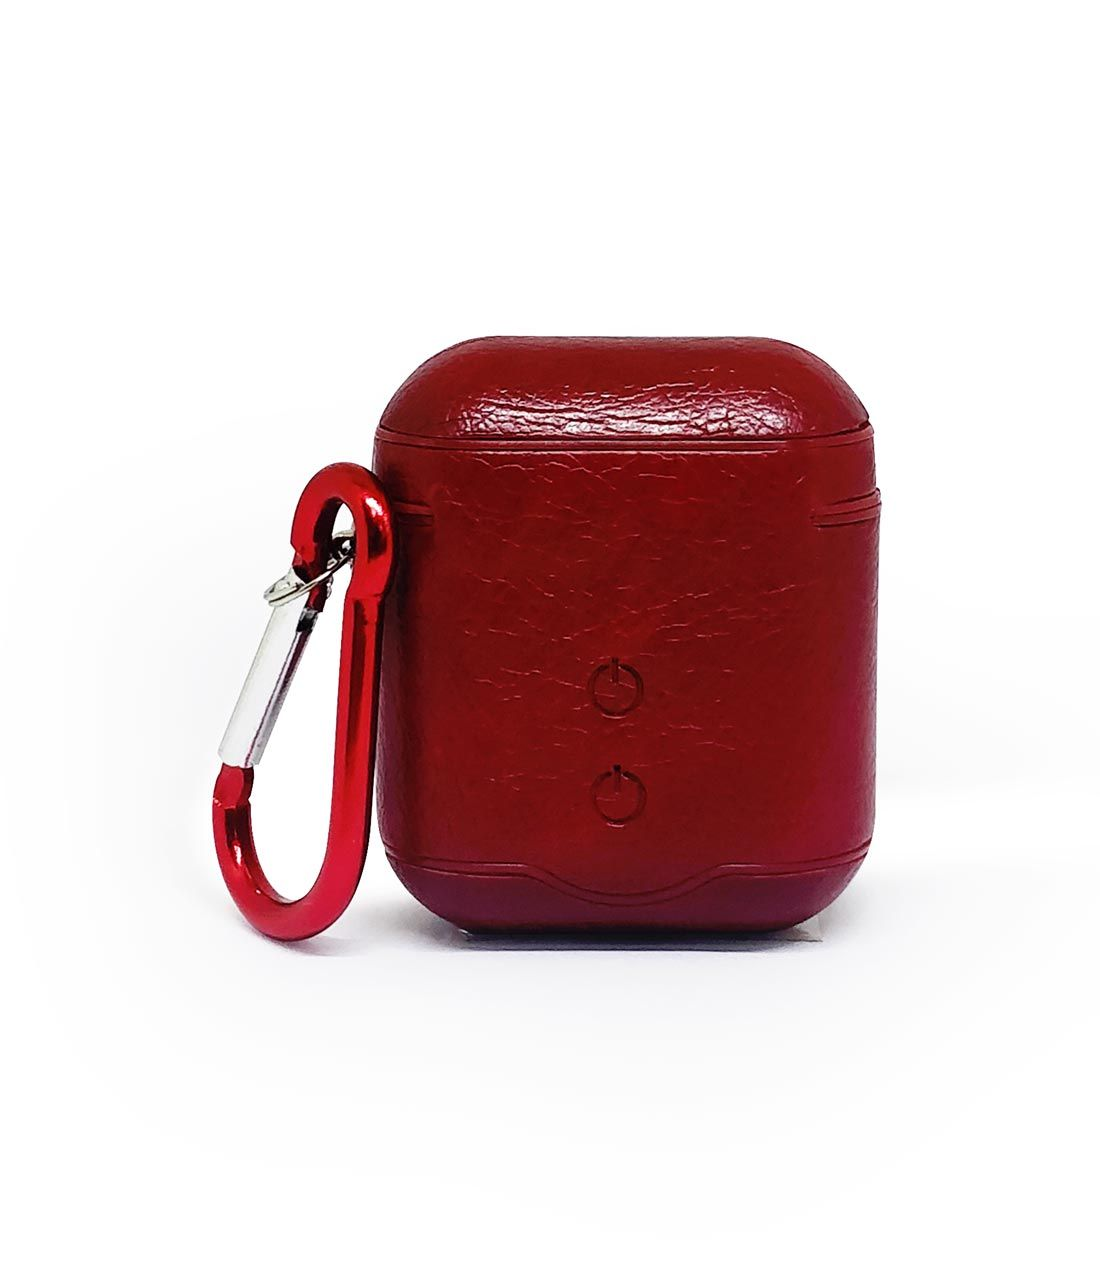 Leather Case Red - AirPods Case